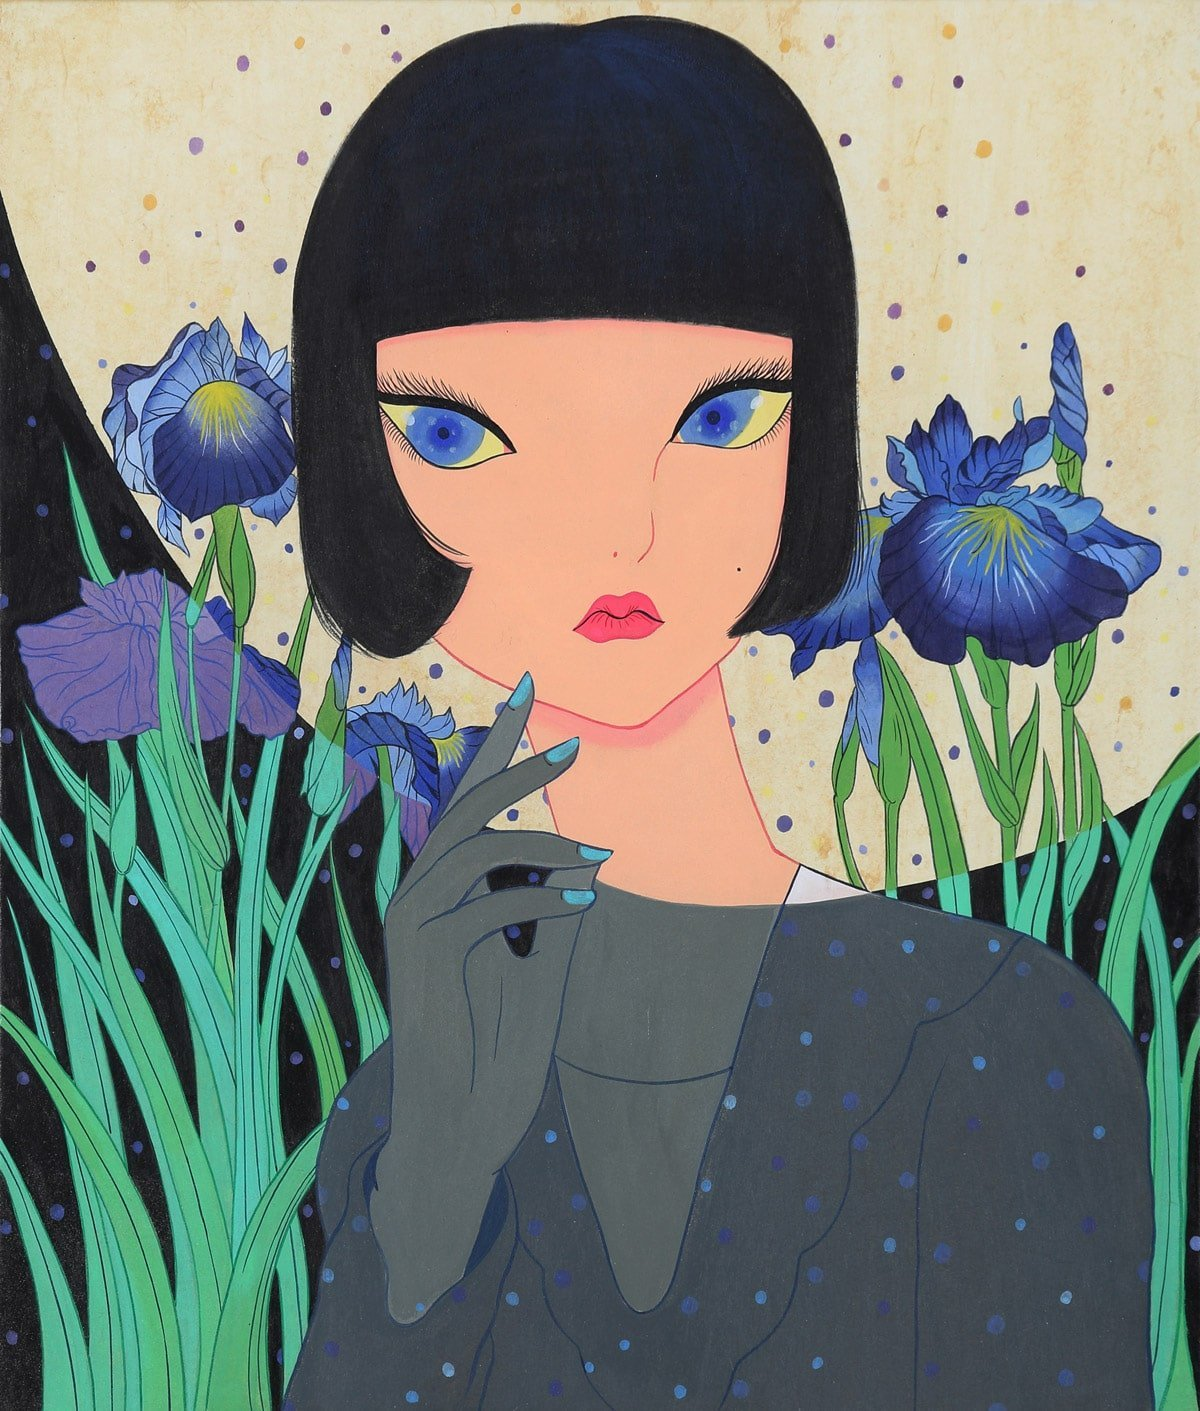 A art print by Korean artist Jang Koal. A lady with blue cat style eyes and a black bob with a fringe. There is a semi circle over her face and neck showing a lighter brighter environment with blue flowers in the background. The rest of the picture is shrouded in darkness.